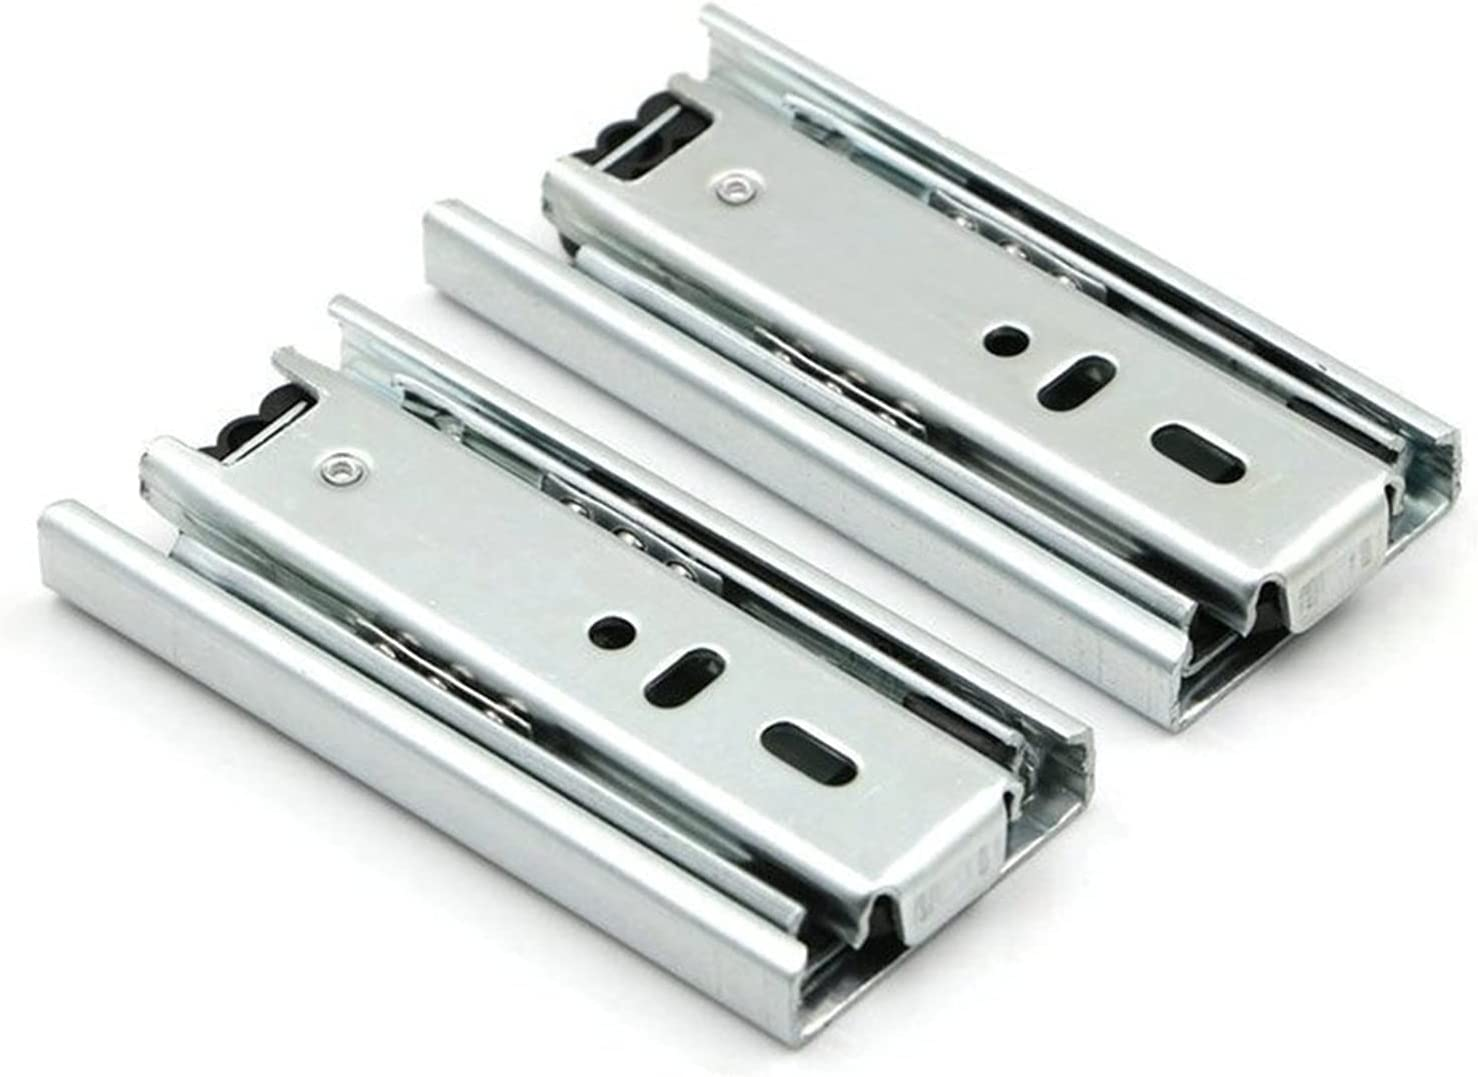 specialty shop At the price Bearing Capacity Drawer Rail Ca Slides Furniture Hardware